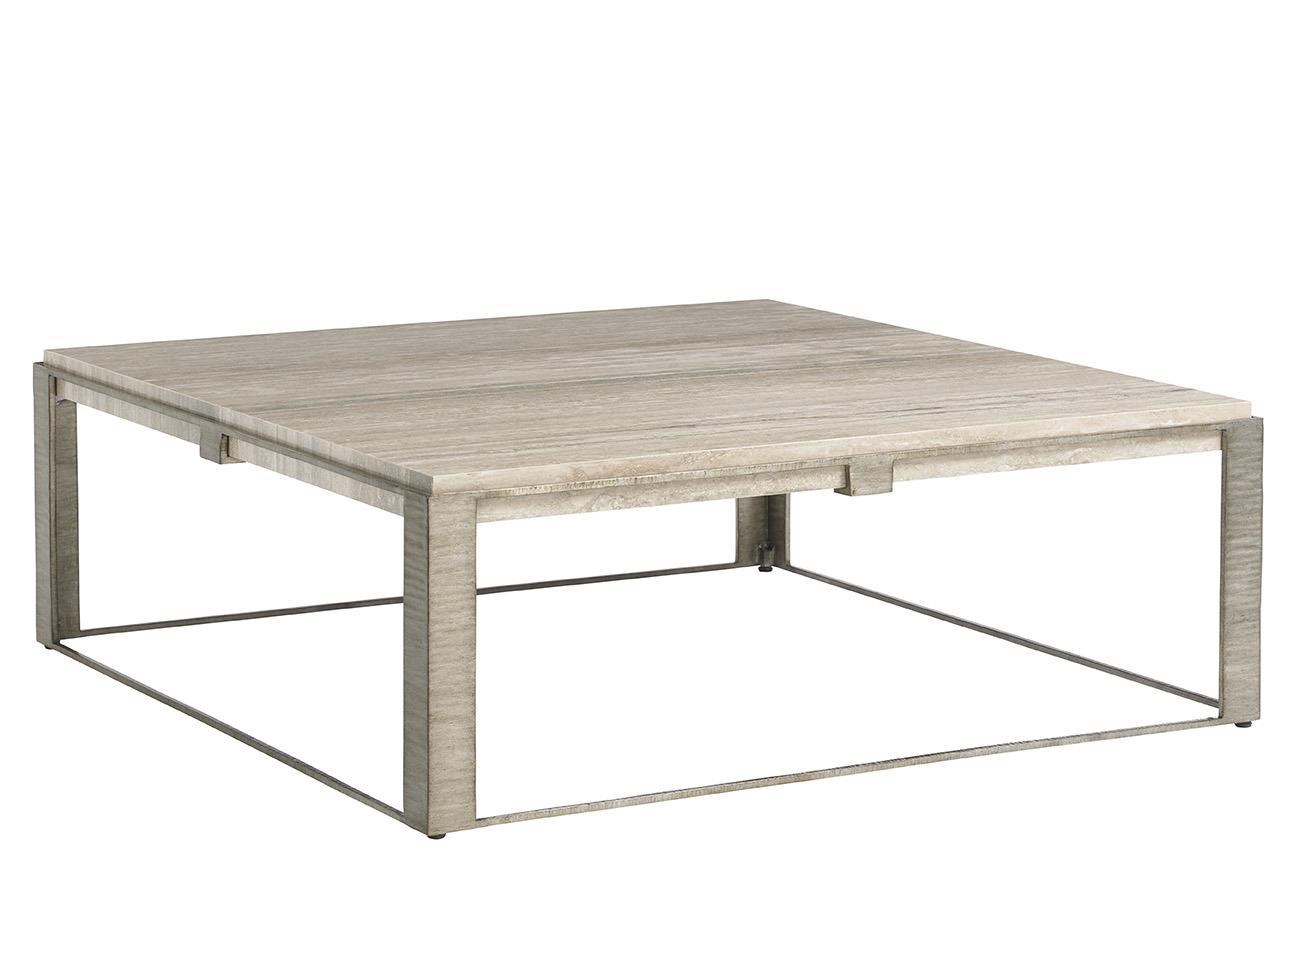 Lexington LAUREL CANYON Stone Canyon Cocktail Table With Silver Travertine  Top